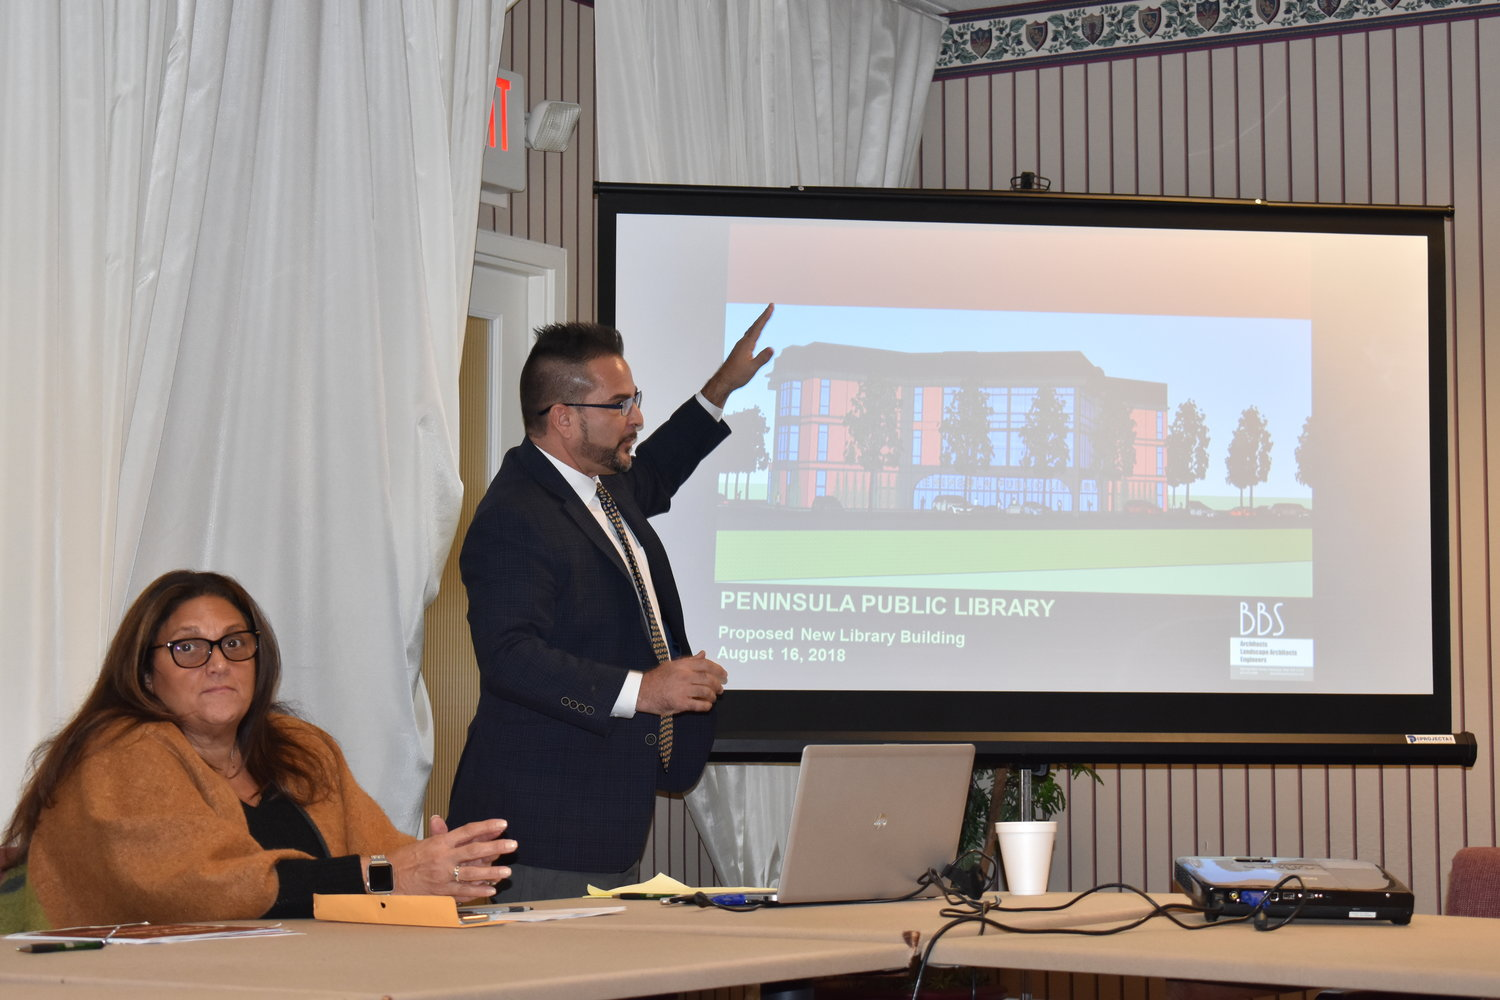 Kevin Walsh, a partner at BBS Architecture, reviewed the latest changes to the plan for a new Peninsula Public Library. Carolynn Matulewicz, the library's director, answered questions at the meeting.